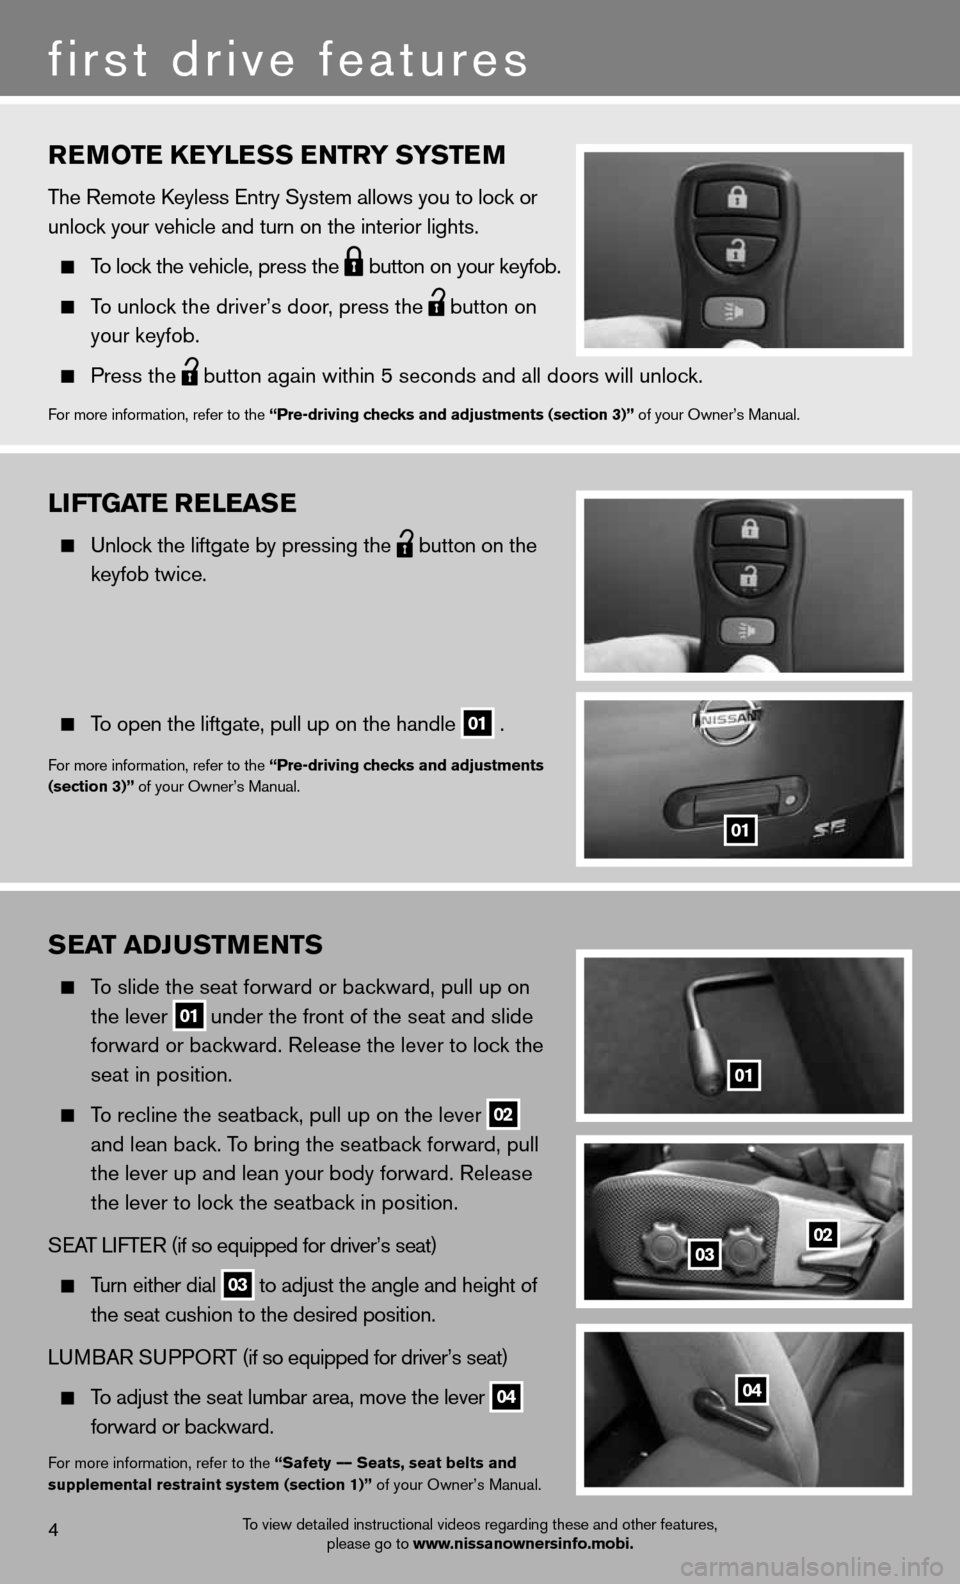 NISSAN XTERRA 2012 N50 / 2.G Quick Reference Guide rEmotE KEylE ss Entry systE m The Remote keyless entry System allows you to lock or  unlock your vehicle and turn on the interior lights.       To lock the vehicle, press the   button on your keyfob.